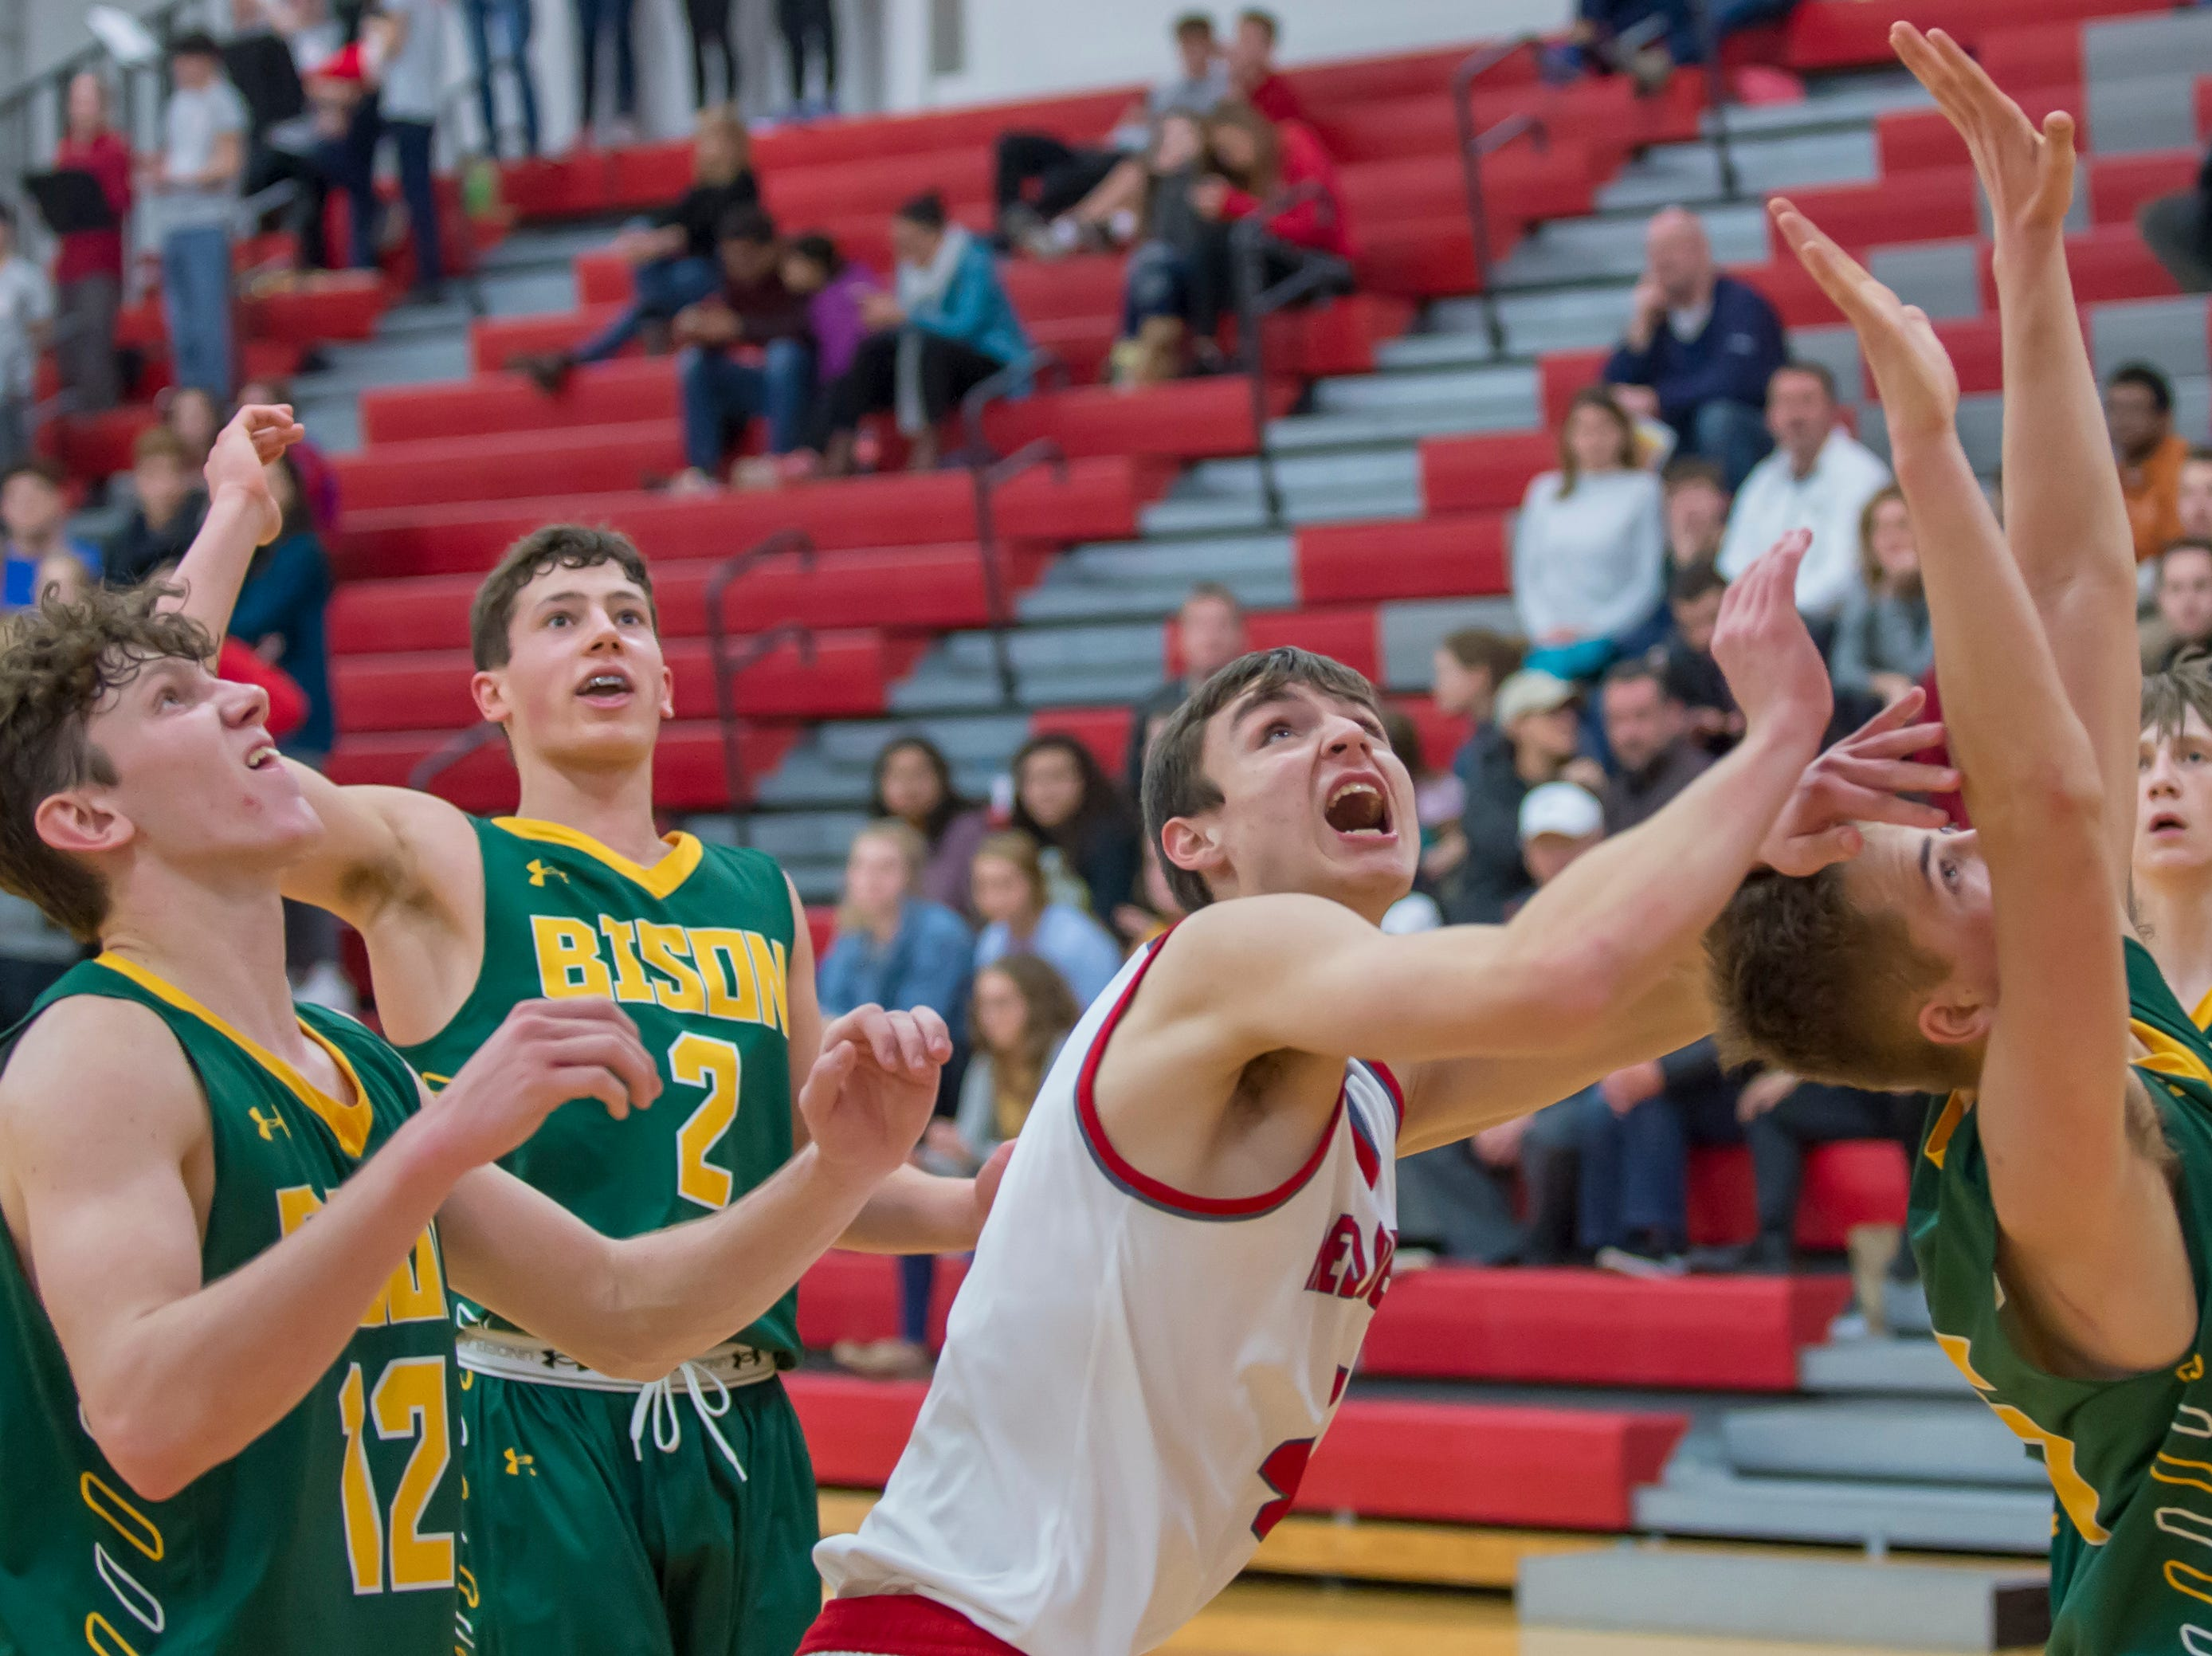 Action from the Benton Central at West Lafayette basketball game on December 14, 2018 - Will Lasater